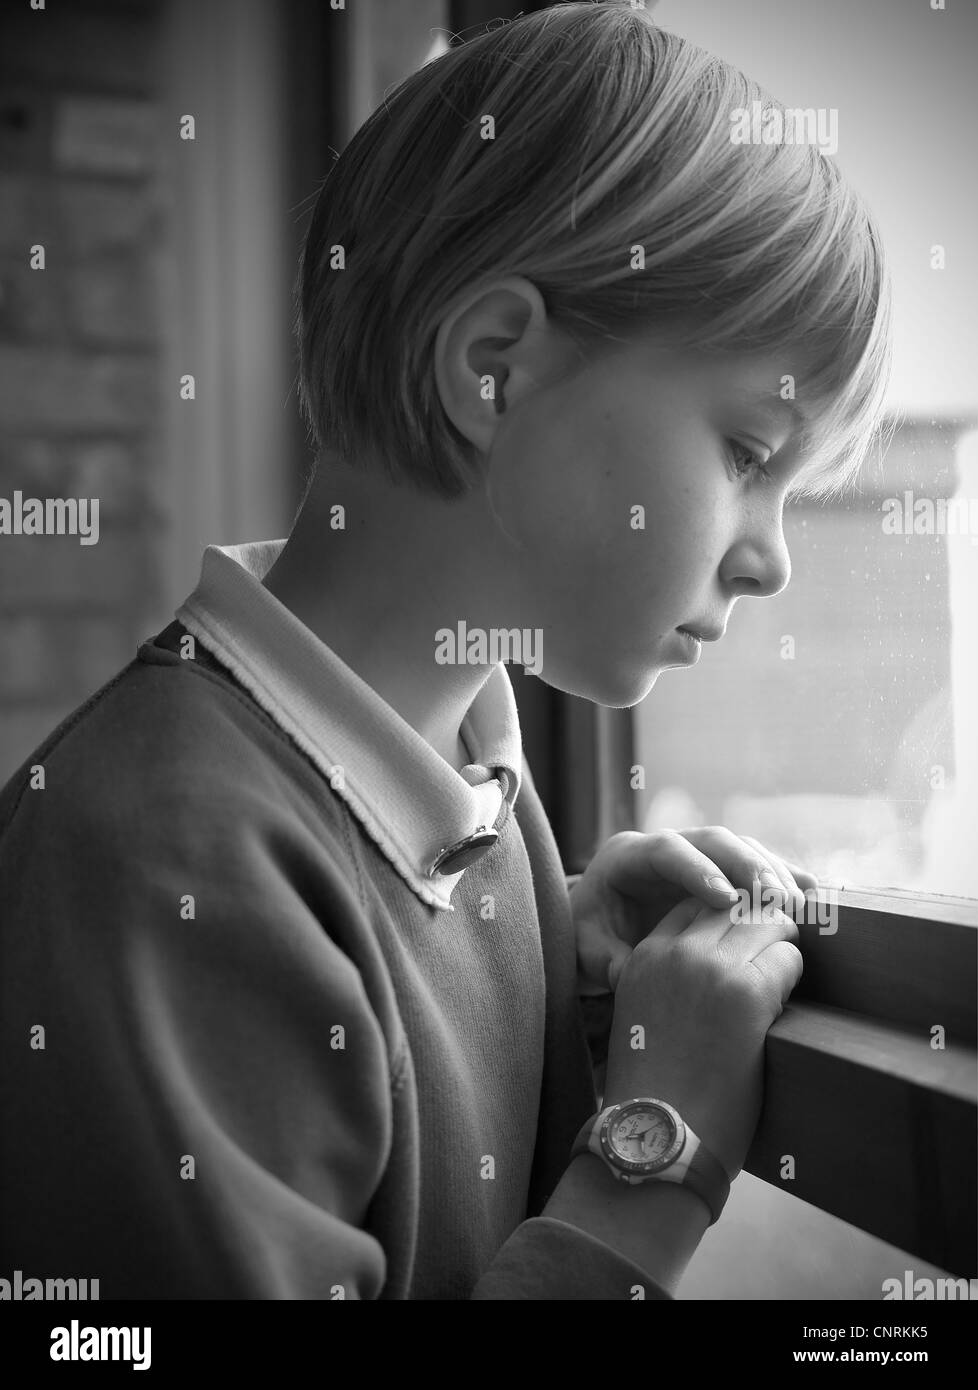 School girl looking out of window stock image